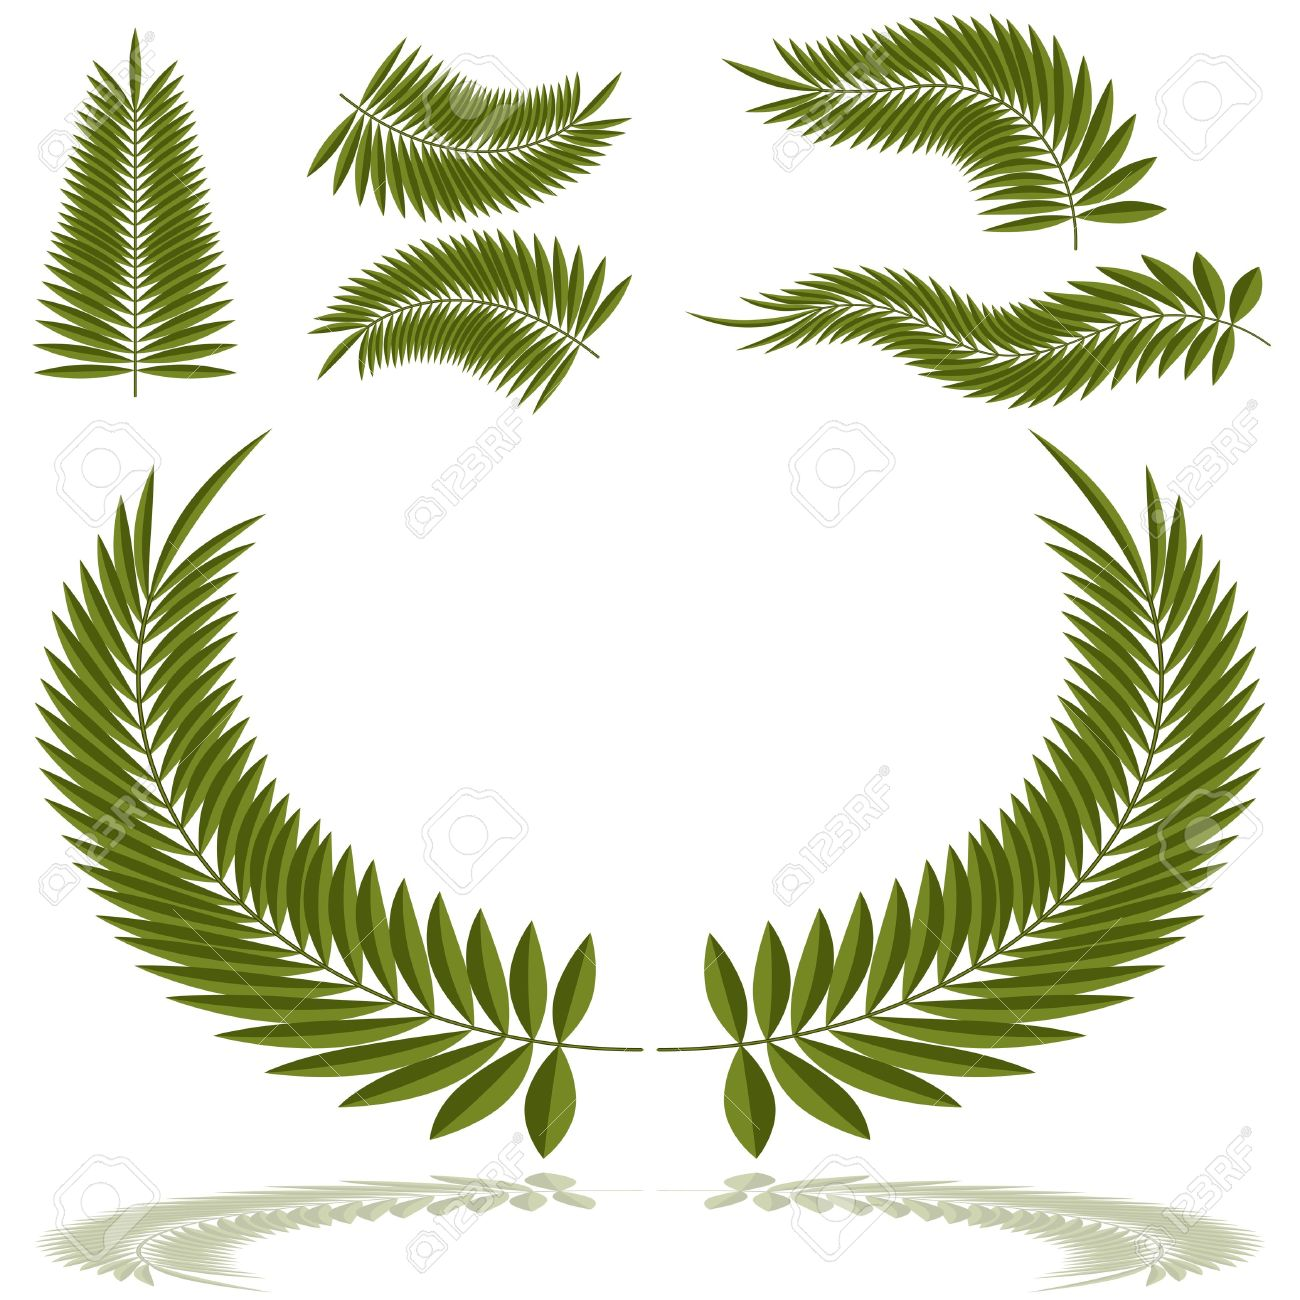 An Image Of A Set Of Palm Fronds. Royalty Free Cliparts, Vectors.